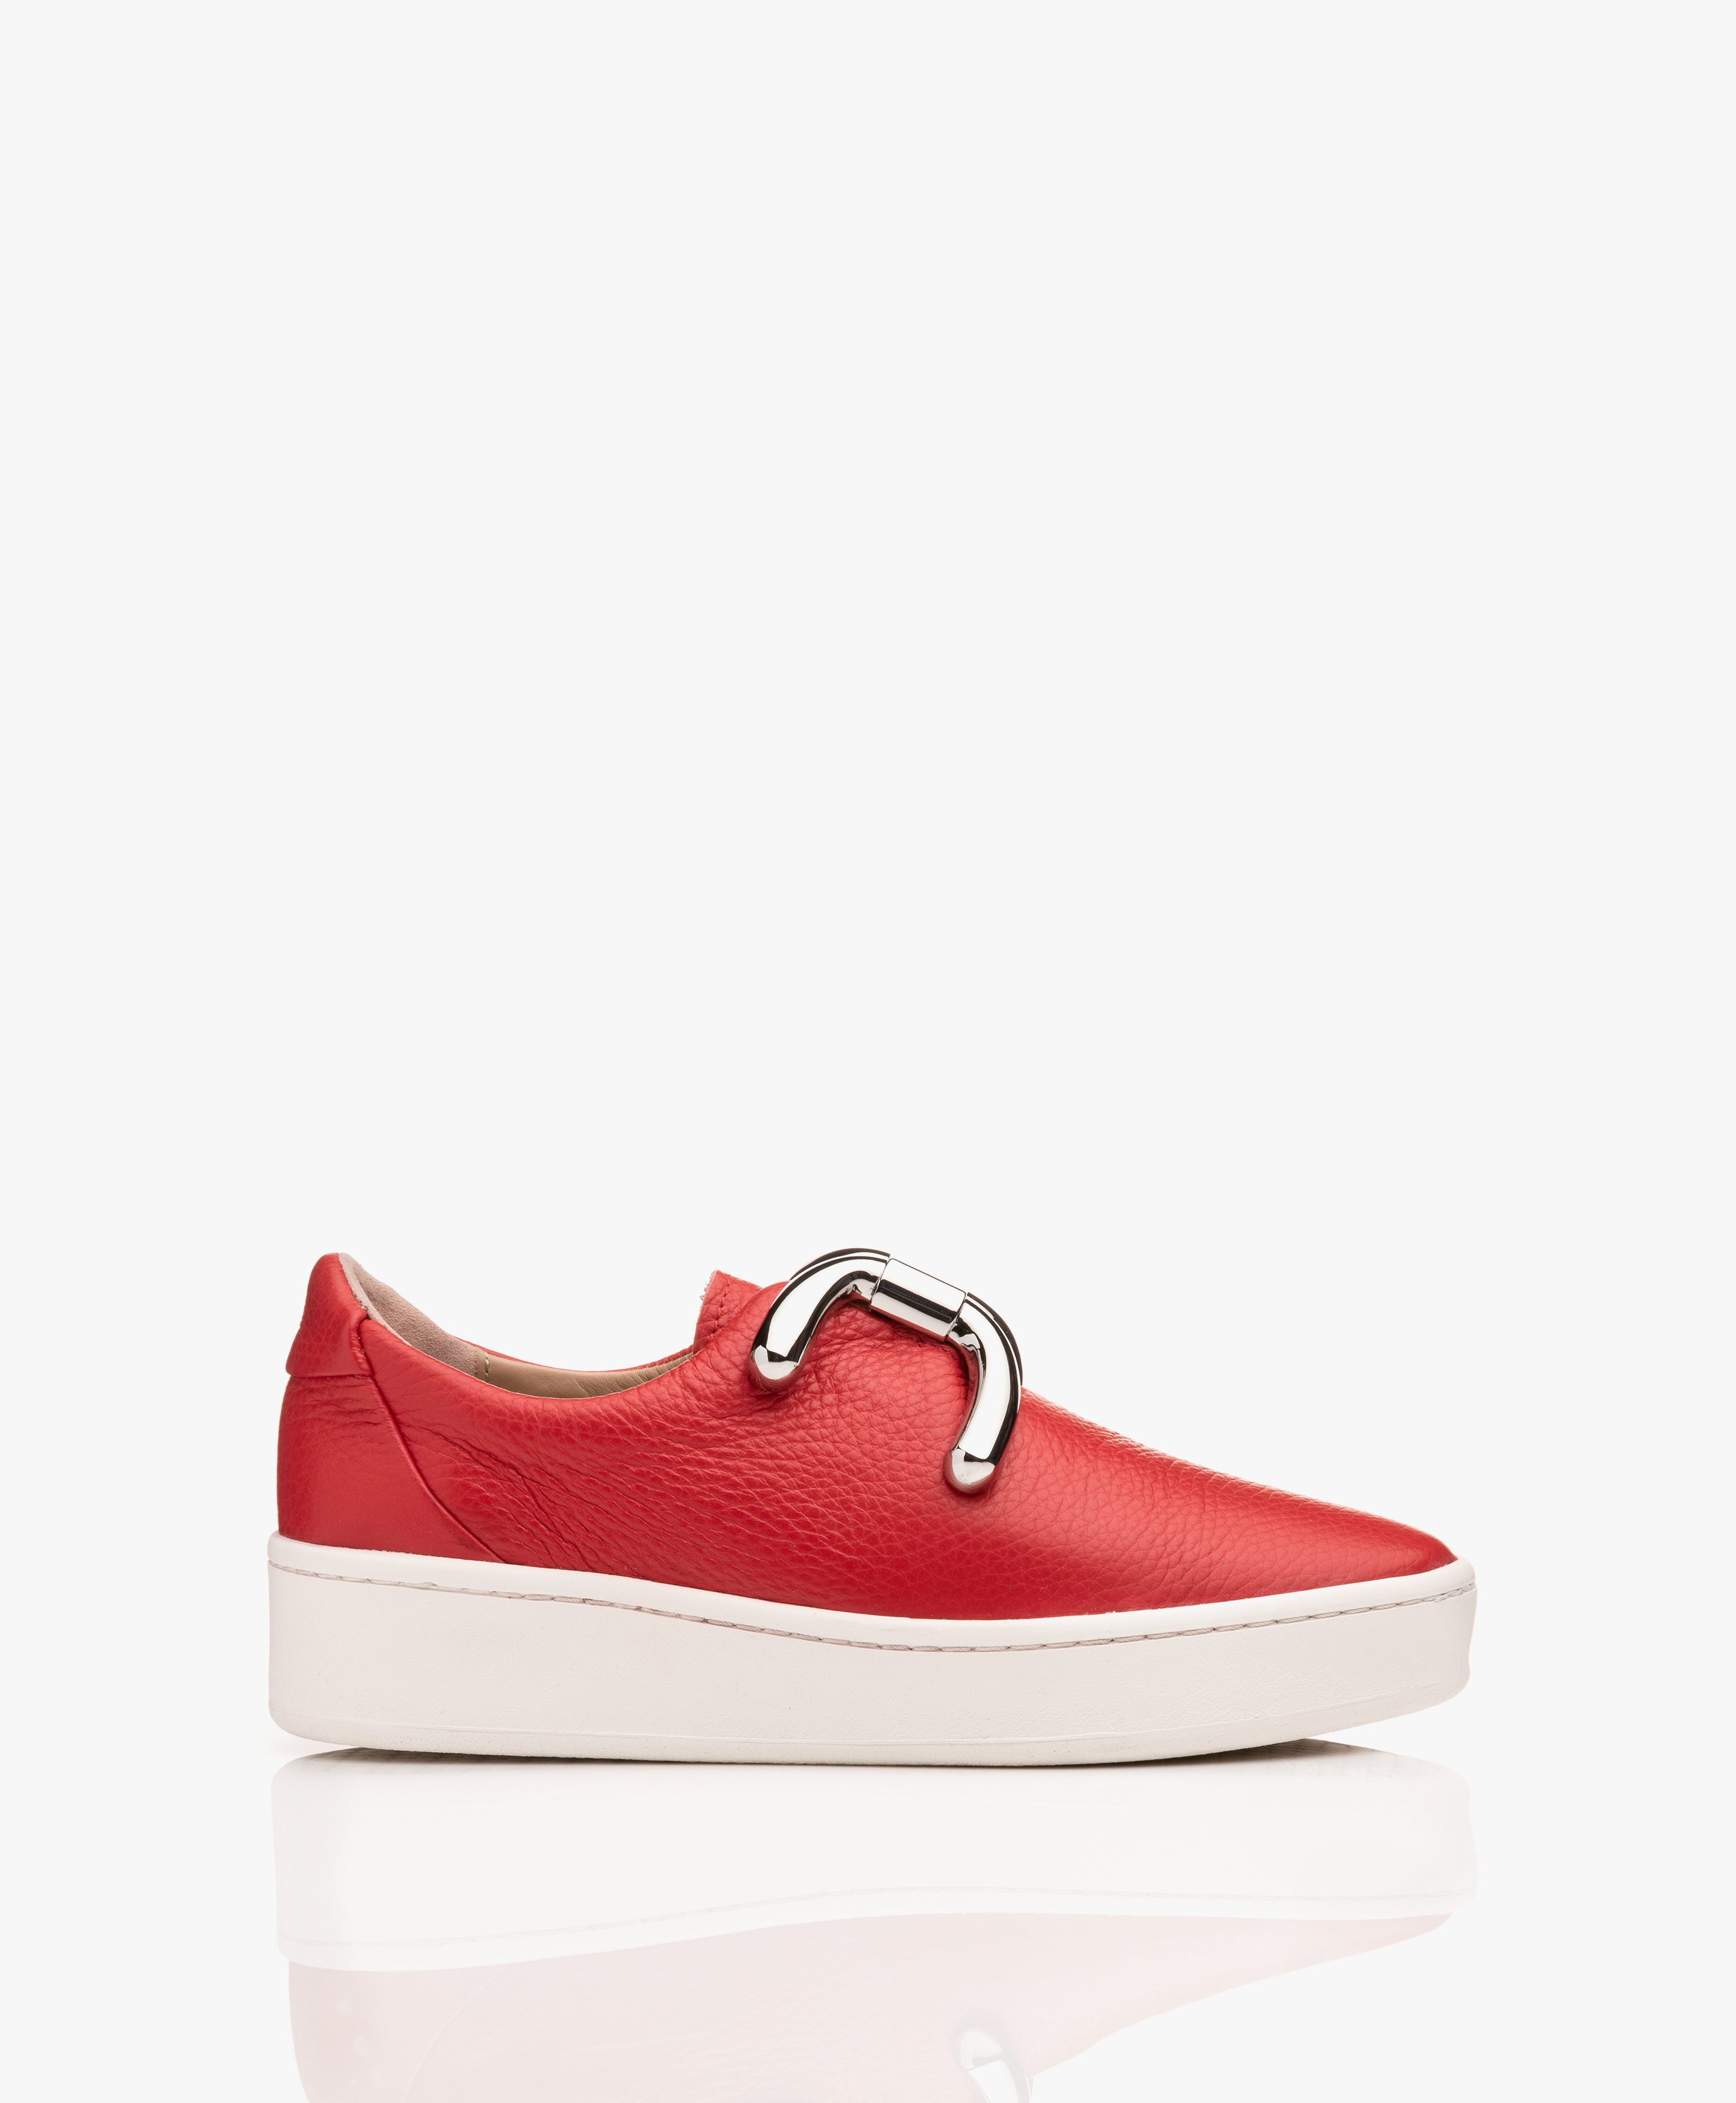 Immagine di An Hour And A Shower Sneakers Knot Low in Red Leather